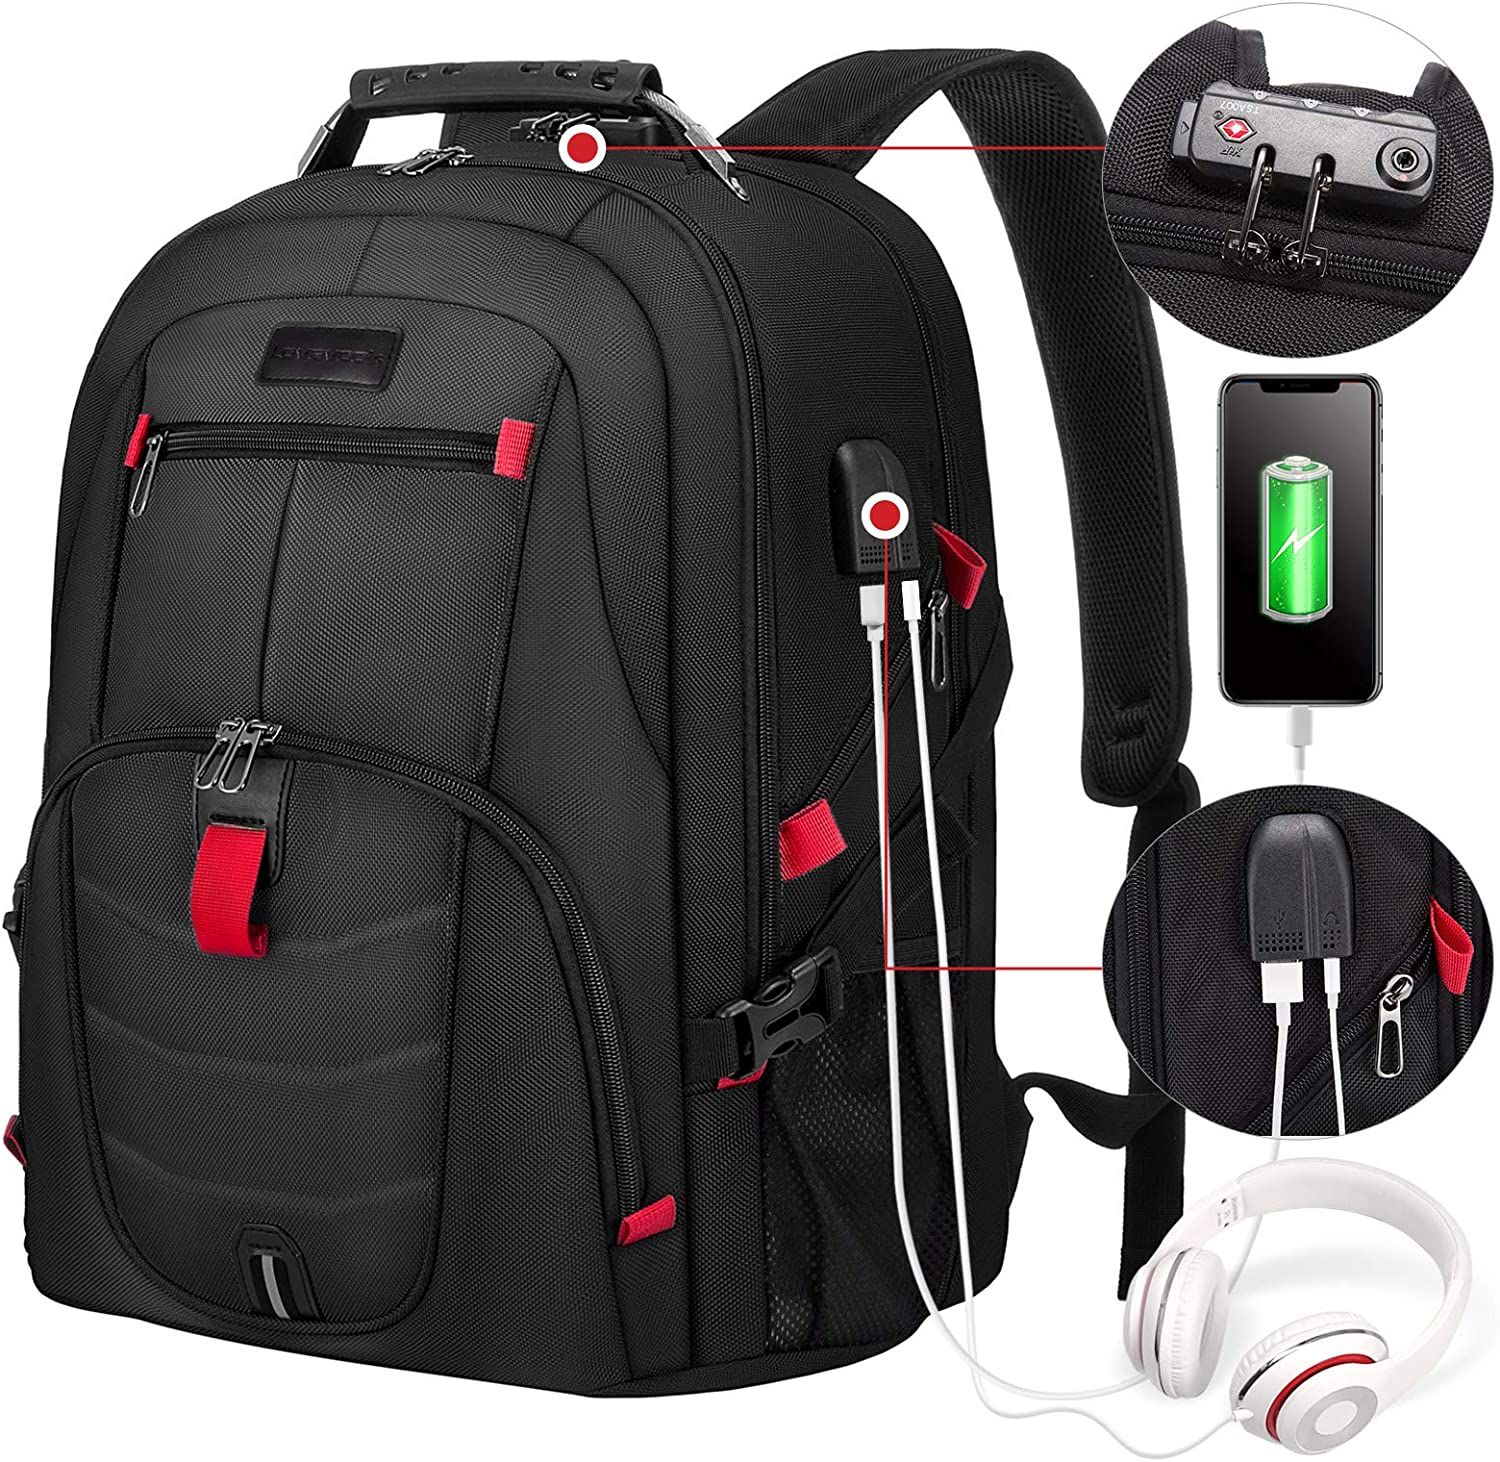 Travel Laptop Backpack Waterproof Anti Theft Backpack with Lock and USB Charging Port Large 17-17.3 Inch Computer Business Backpack for Men Women School College Backpack Black